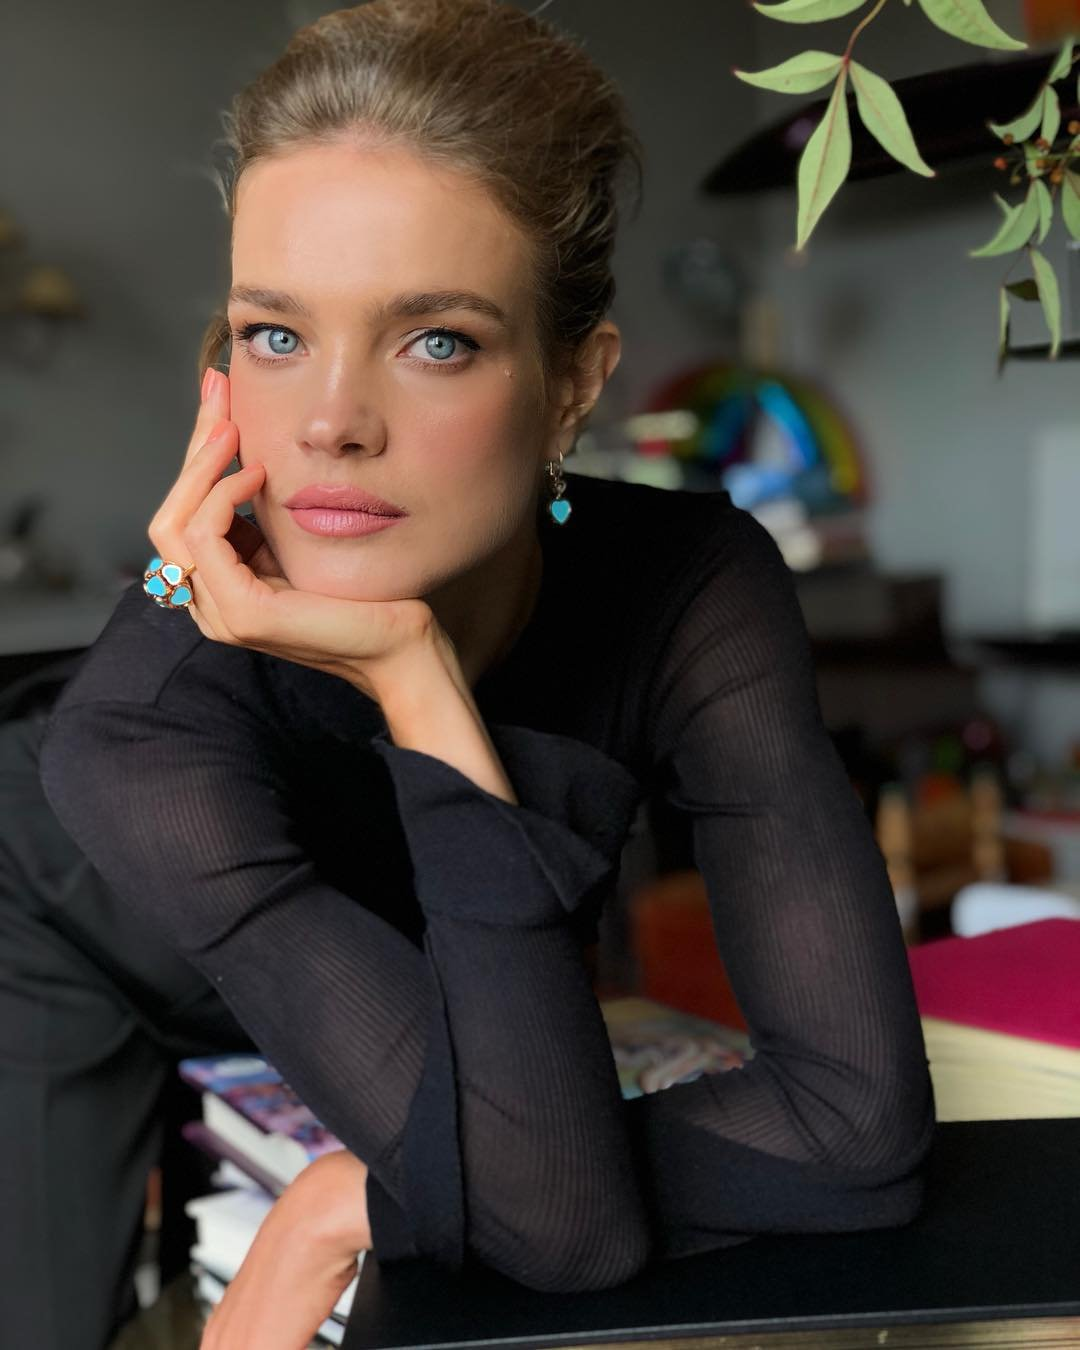 Natalia Vodianova has posted a photo on Instagram with the following remarks: Caught in between shows ???????????????? Twitter, 2018-10-04 09:41:02. Photo supplied by insight media. Service fee applies. NICHT ZUR VERÖFFENTLICHUNG IN BÜCHERN UND BILDBÄNDEN! EDITORIAL USE ONLY! / MAY NOT BE PUBLISHED IN BOOKS AND ILLUSTRATED BOOKS! Please note: Fees charged by the agency are for the agency's services only, and do not, nor are they intended to, convey to the user any ownership of Copyright or License in the material. The agency does not claim any ownership including but not limited to Copyright or License in the attached material. By publishing this material you expressly agree to indemnify and to hold the agency and its directors, shareholders and employees harmless from any loss, claims, damages, demands, expenses (including legal fees), or any causes of action or allegation against the agency arising out of or connected in any way with publication of the material., Image: 389758086, License: Rights-managed, Restrictions: NICHT ZUR VERÖFFENTLICHUNG IN BÜCHERN UND BILDBÄNDEN! Please note additional conditions in the caption, Model Release: no, Credit line: Profimedia, Insight Media